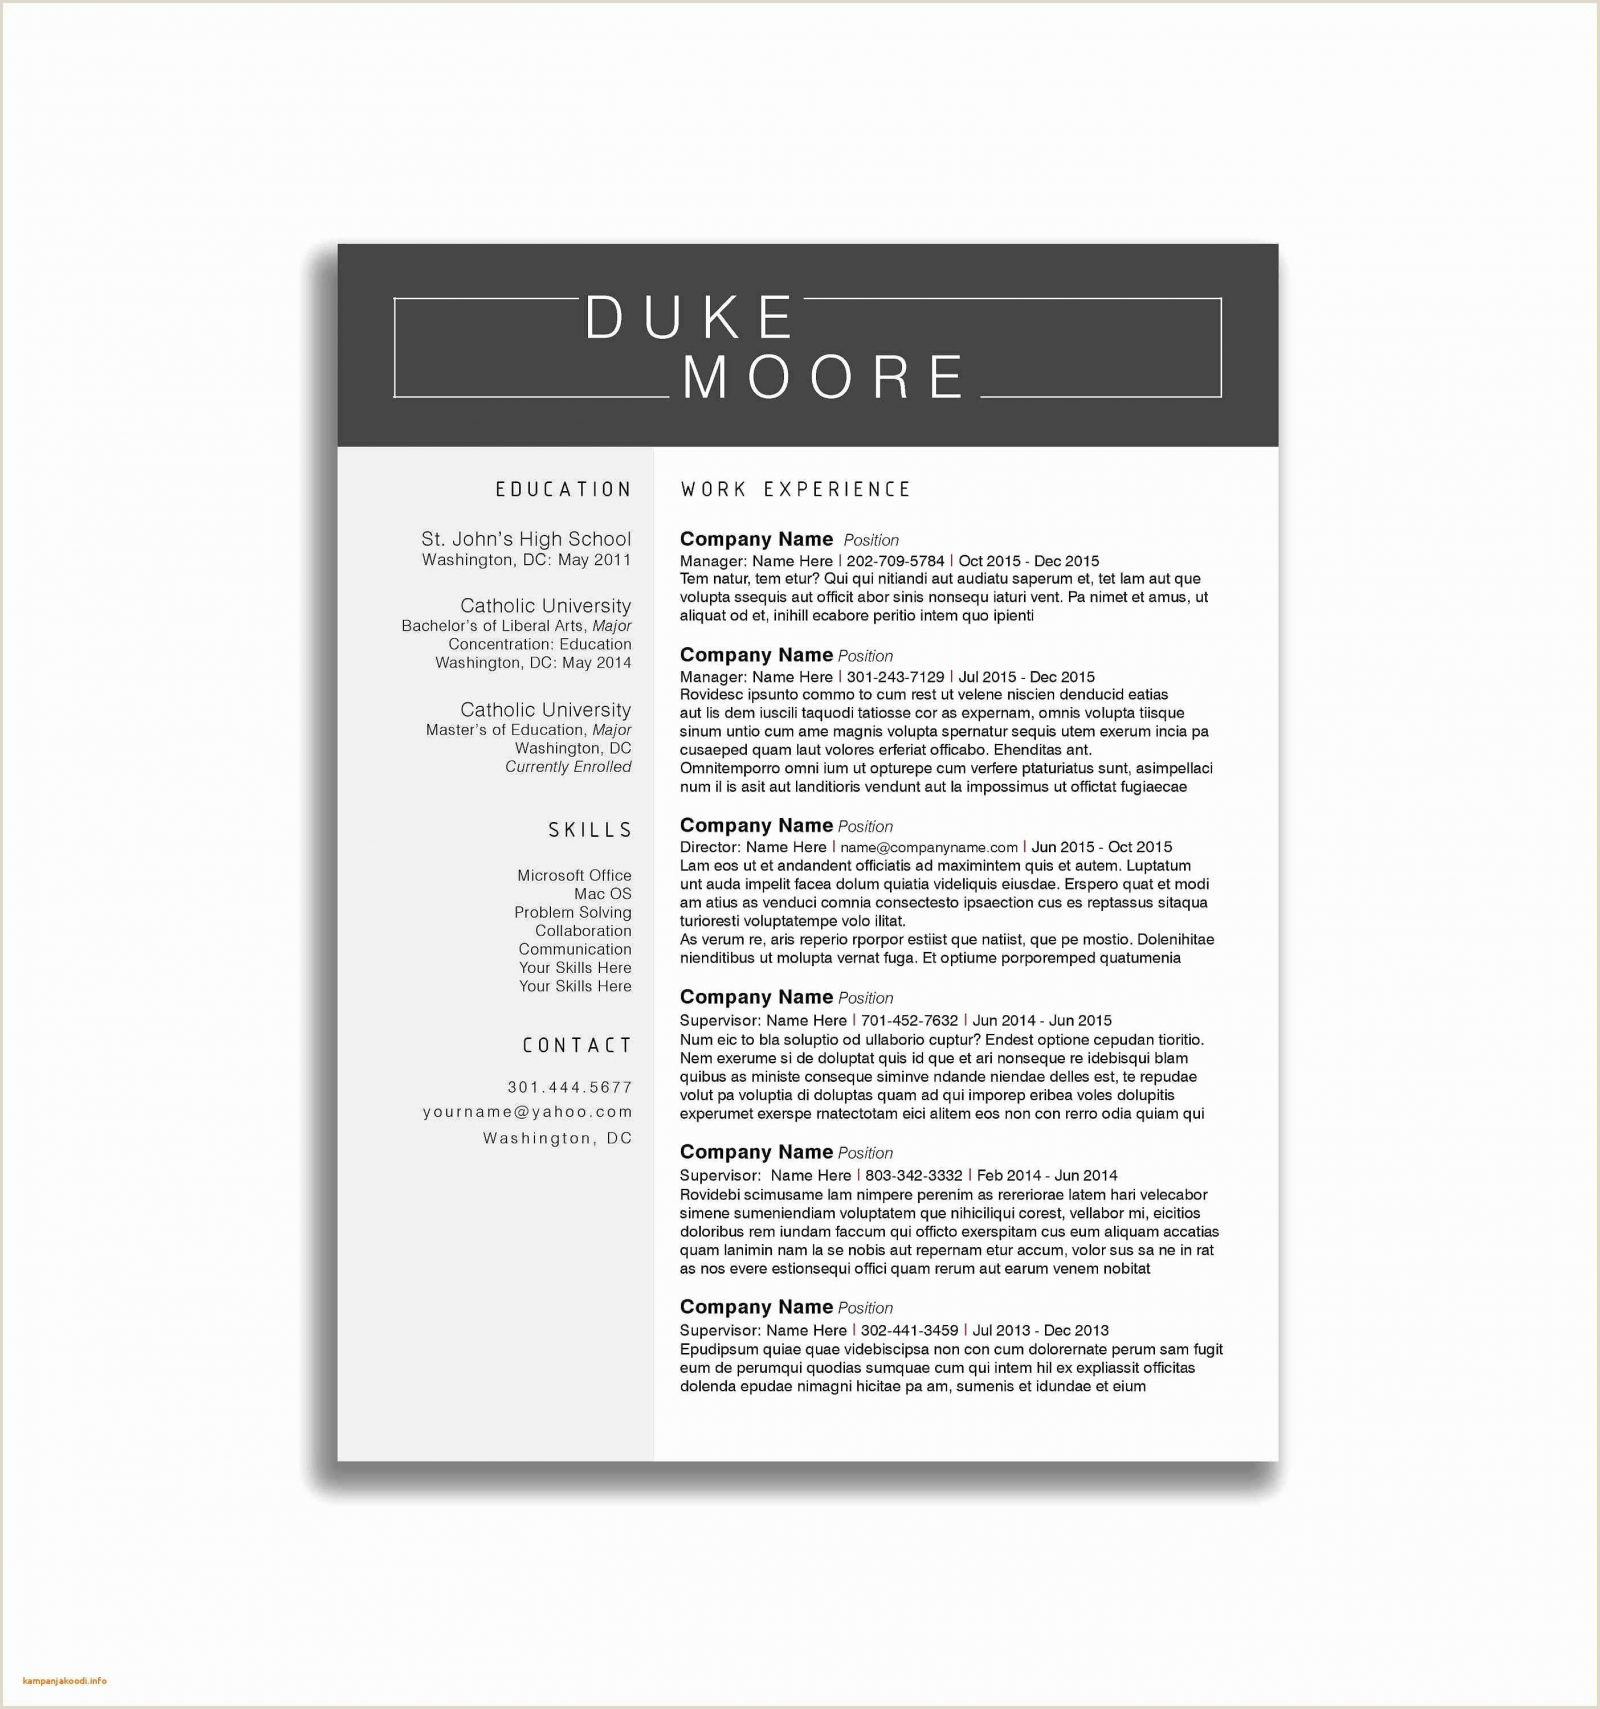 Resume format Download In Ms Word for Fresher Engineer Pin topresumes Latest Resume Pinterest Microsoft Word